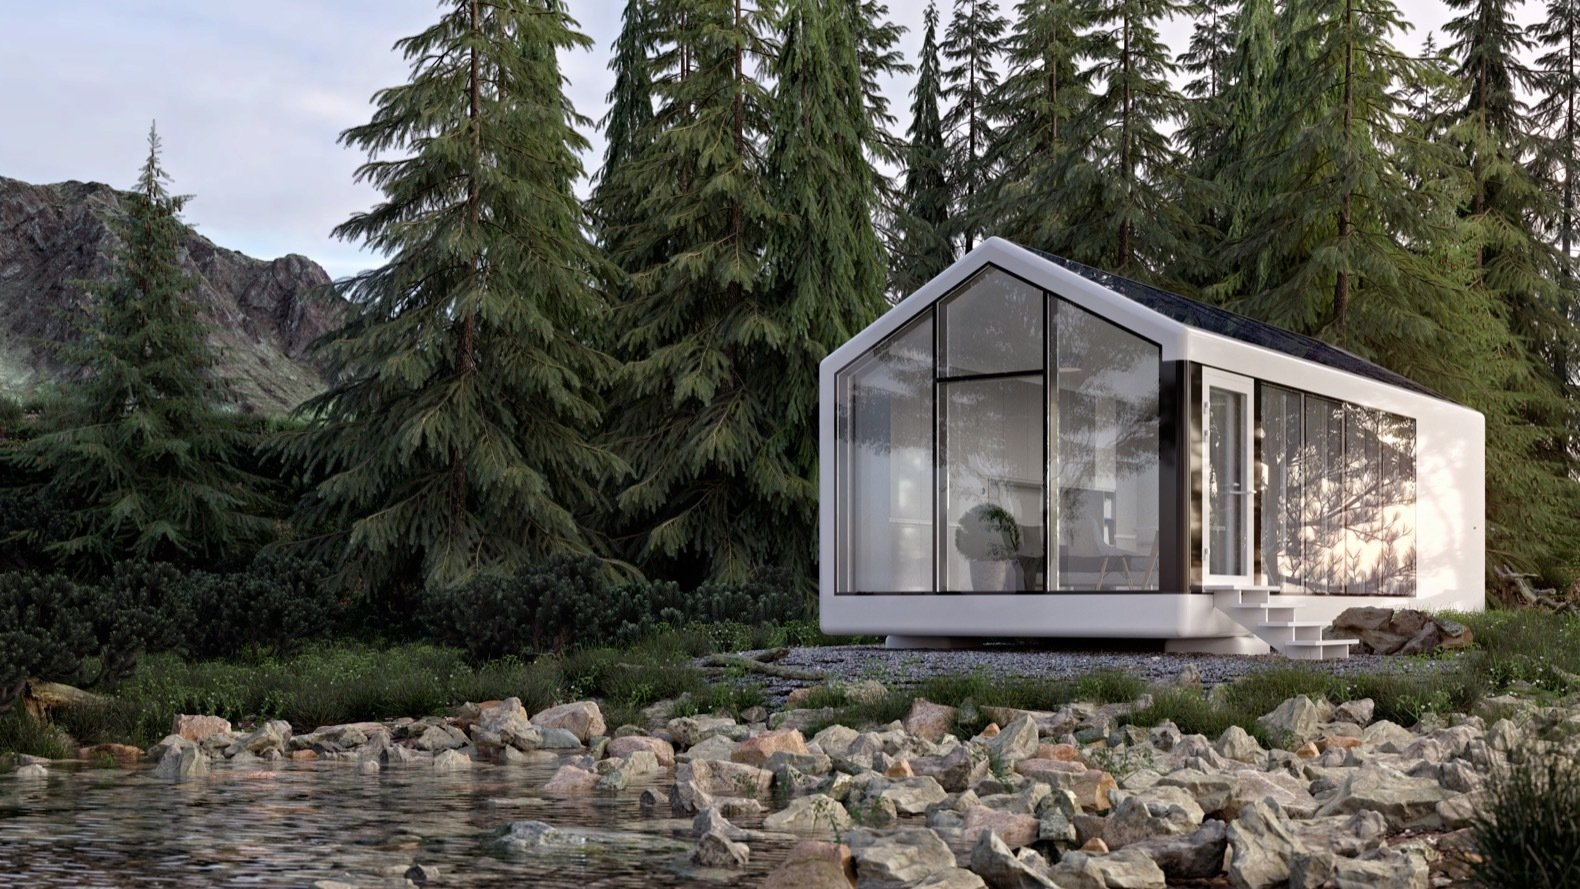 A pitch-roofed house with glass walls on a rocky shore with evergreen trees in the back.